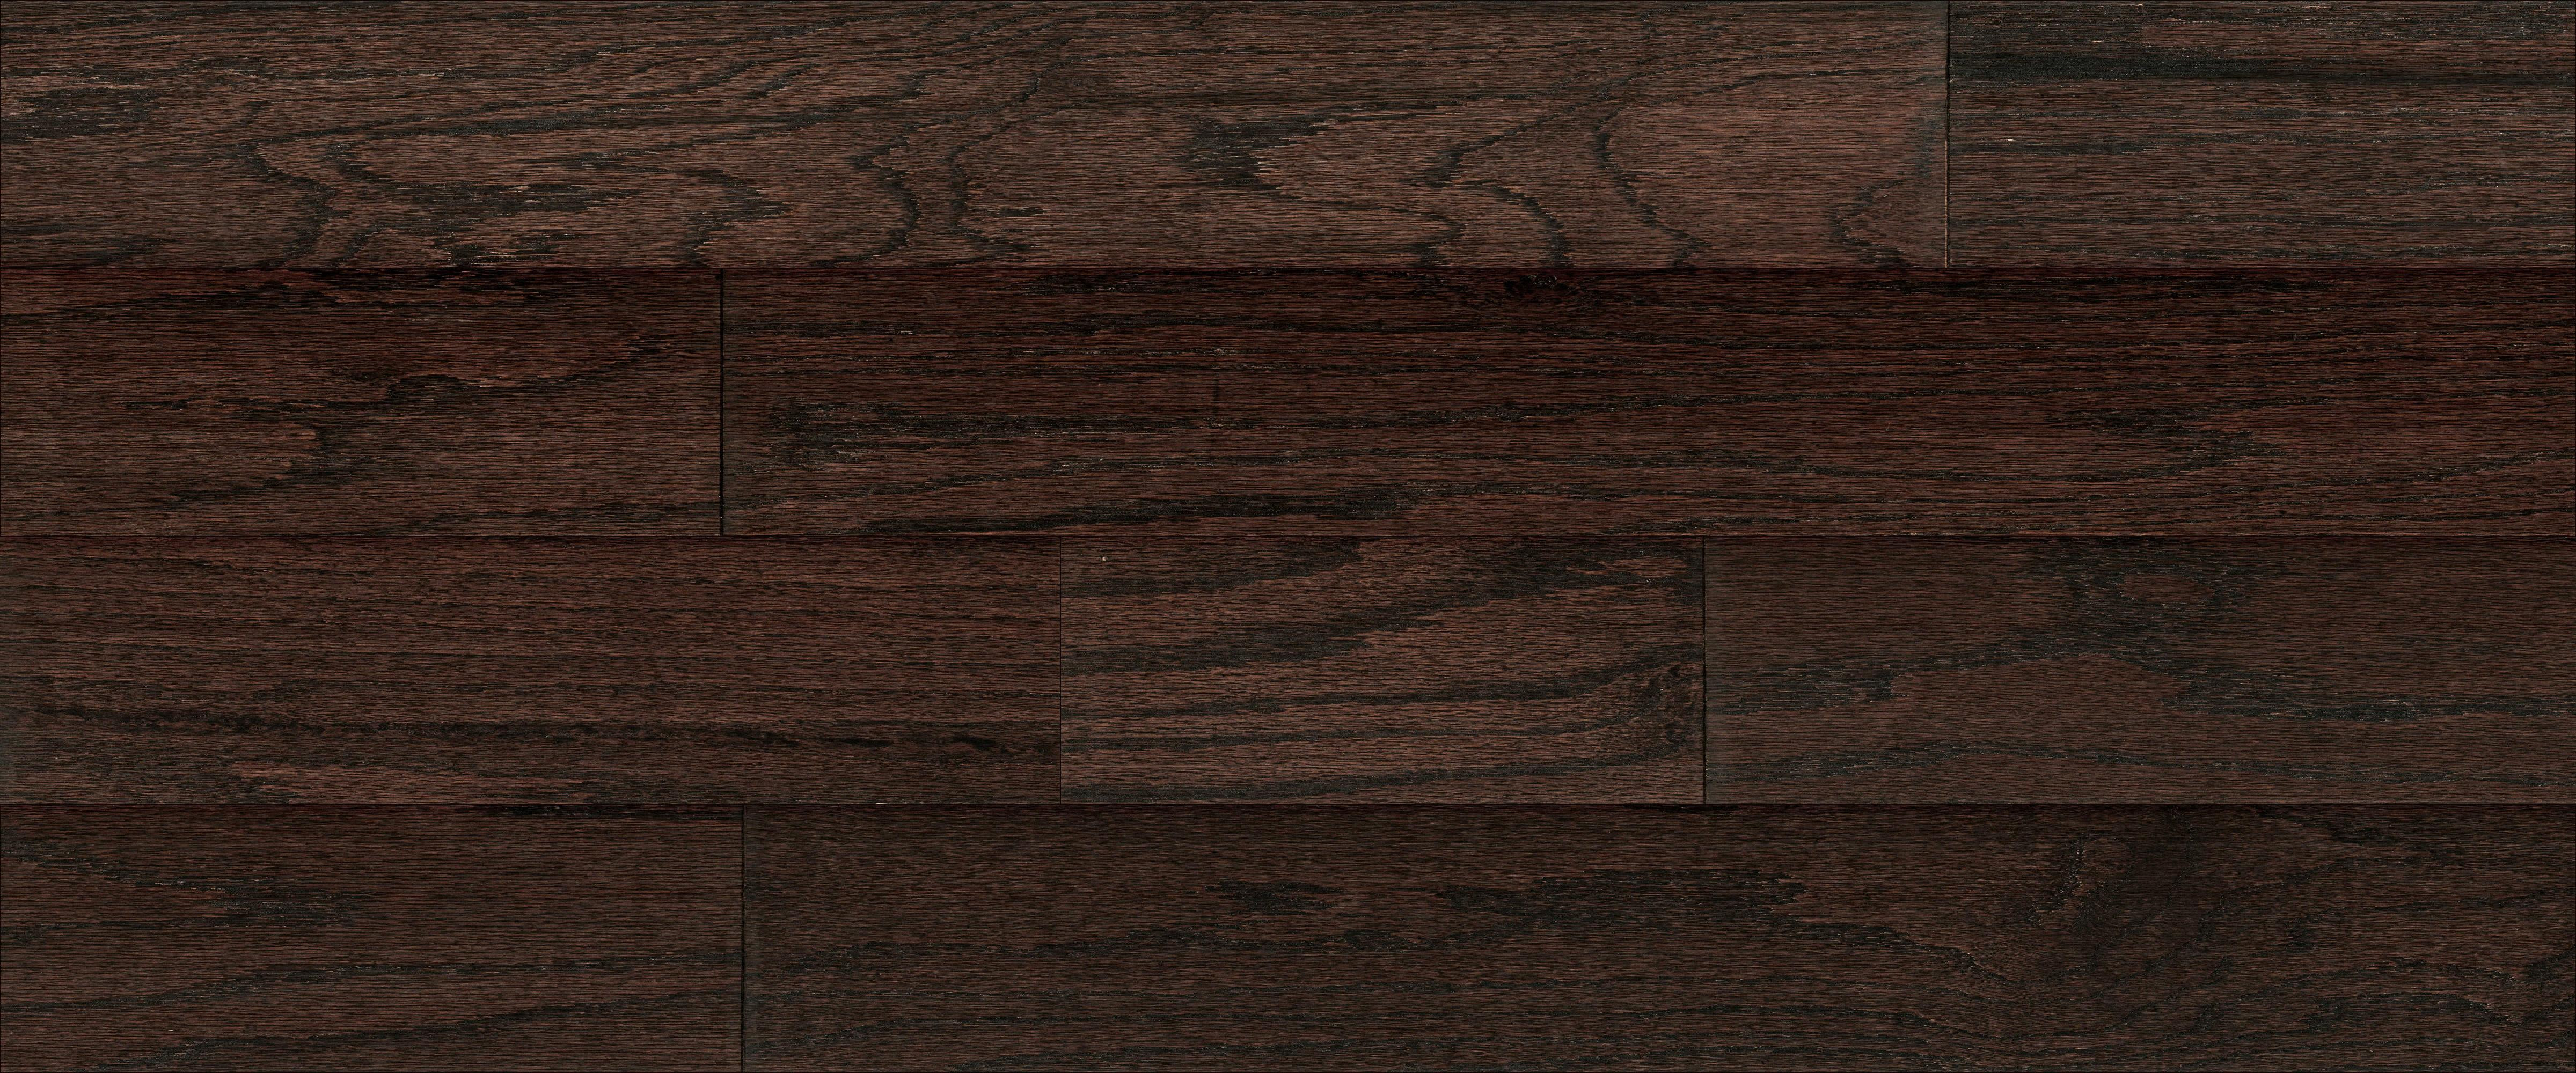 30 Great Wide Plank Hardwood Flooring Problems 2021 free download wide plank hardwood flooring problems of mullican newtown plank oak bridle 1 2 thick 5 wide engineered inside mullican newtown plank oak bridle 1 2 thick 5 wide engineered hardwood flooring